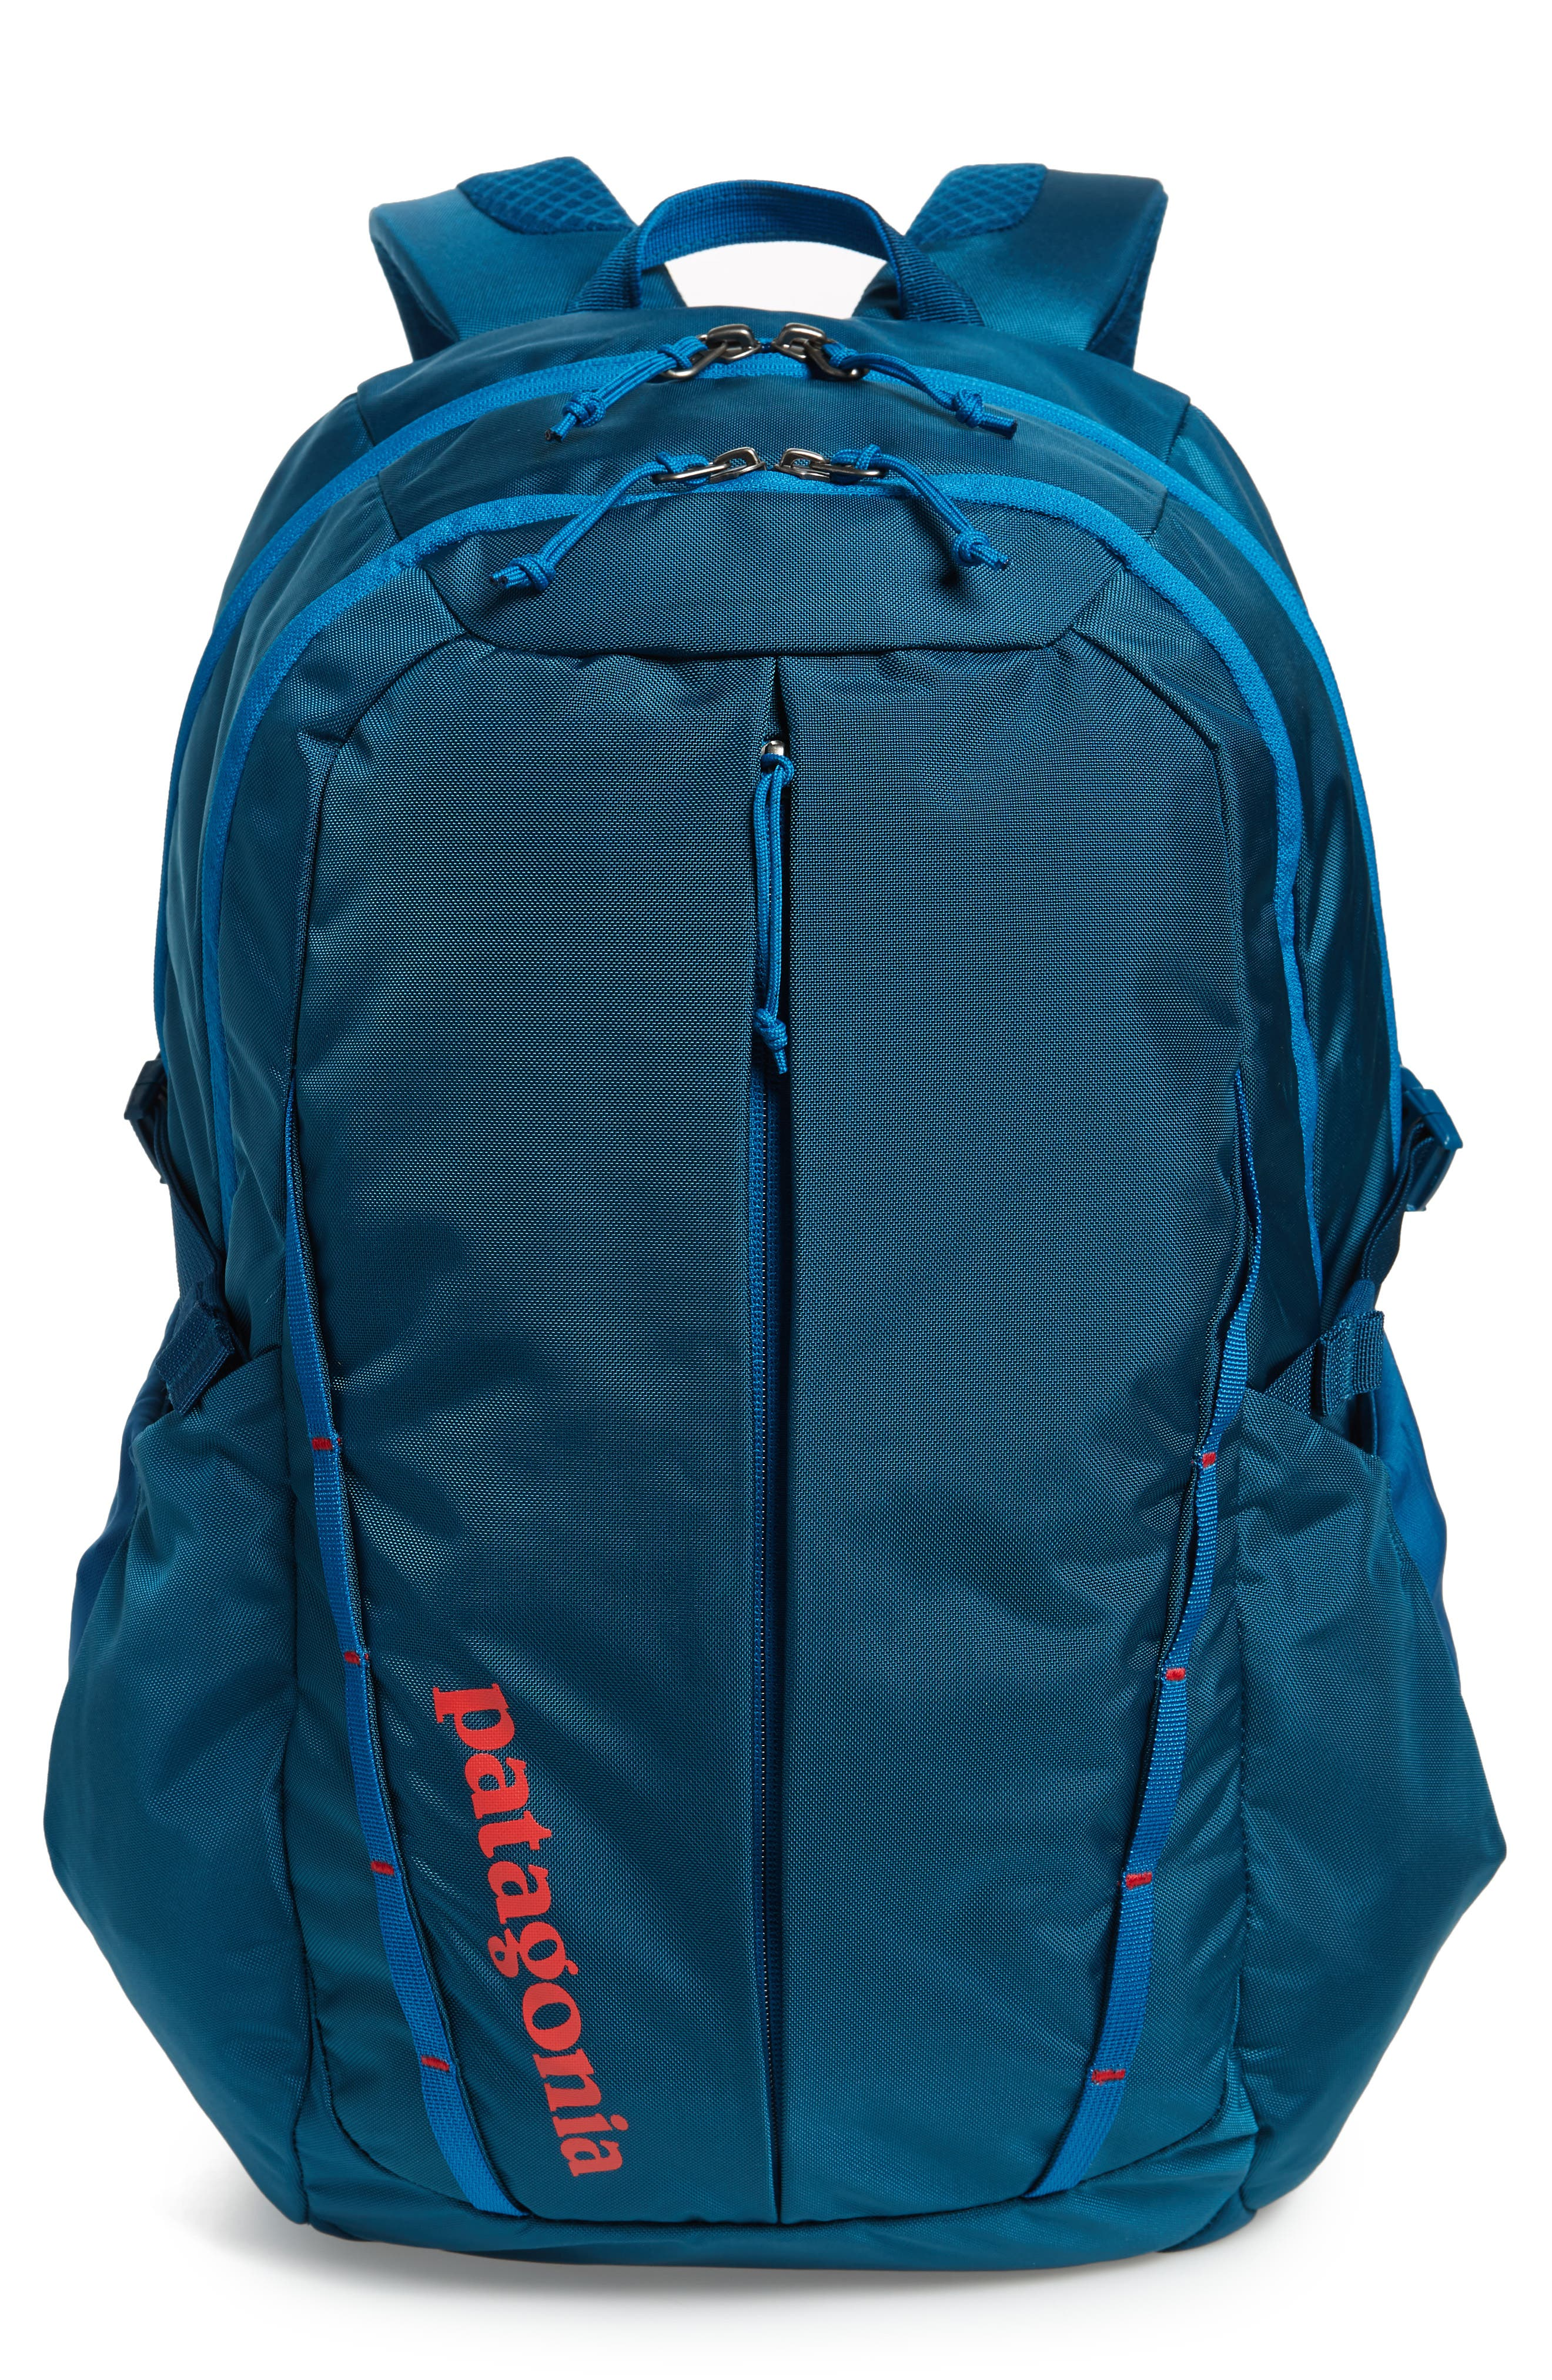 Patagonia 28L Refugio Backpack - Blue